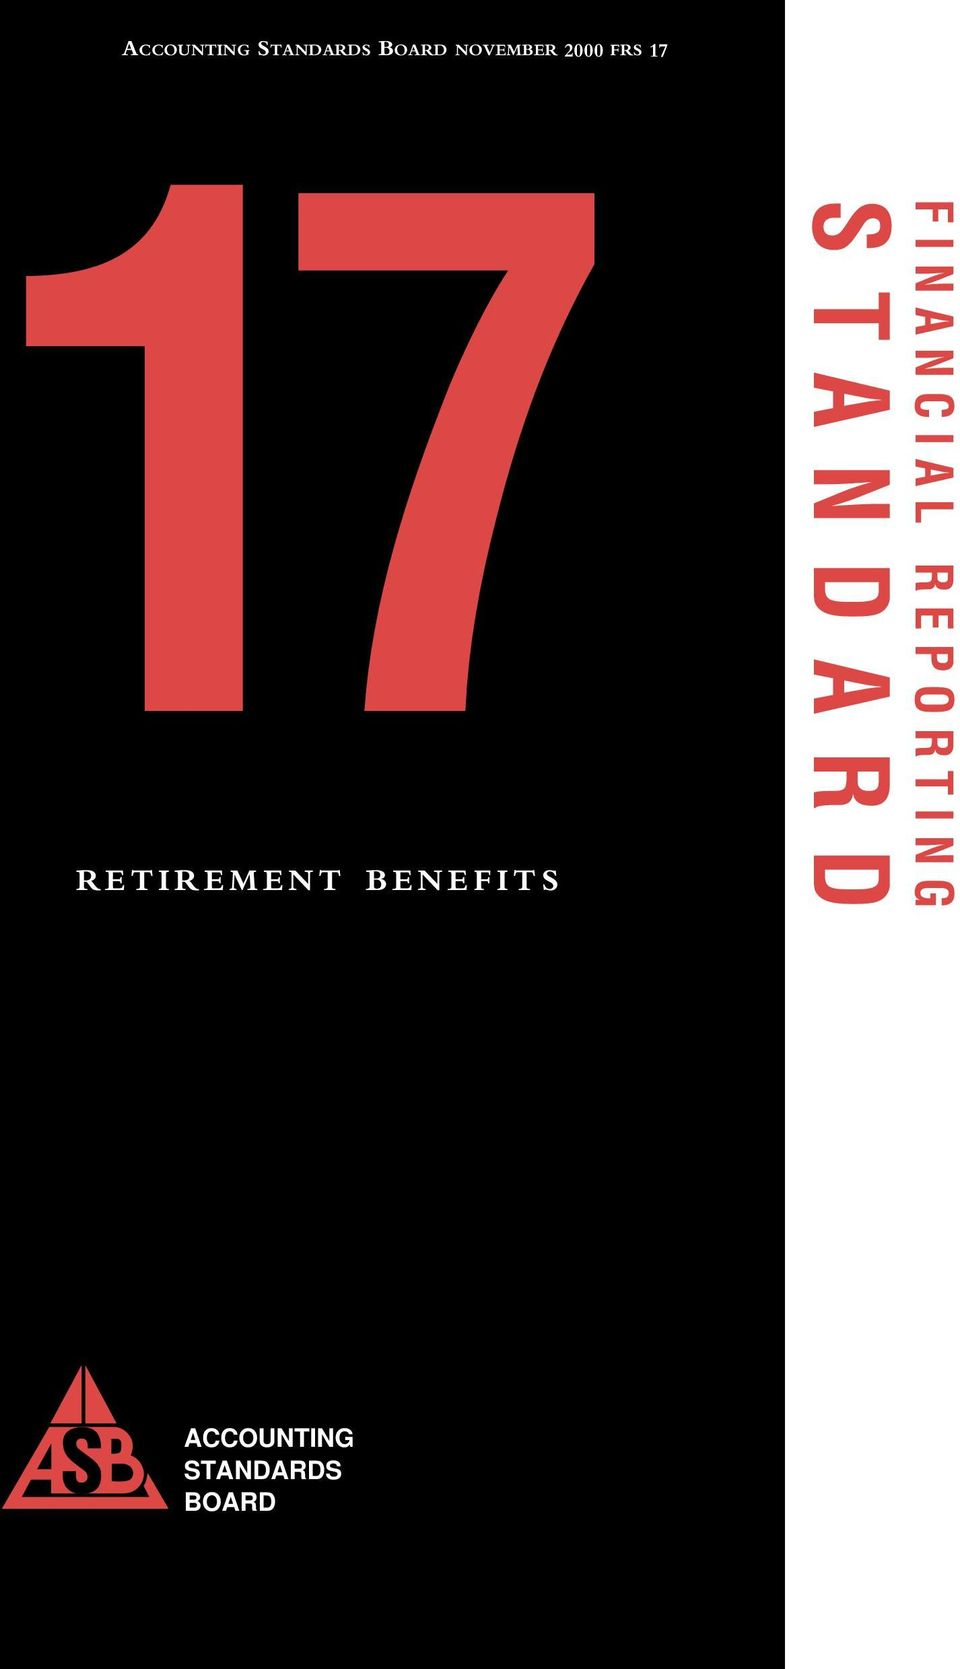 RETIREMENT BENEFITS FINANCIAL